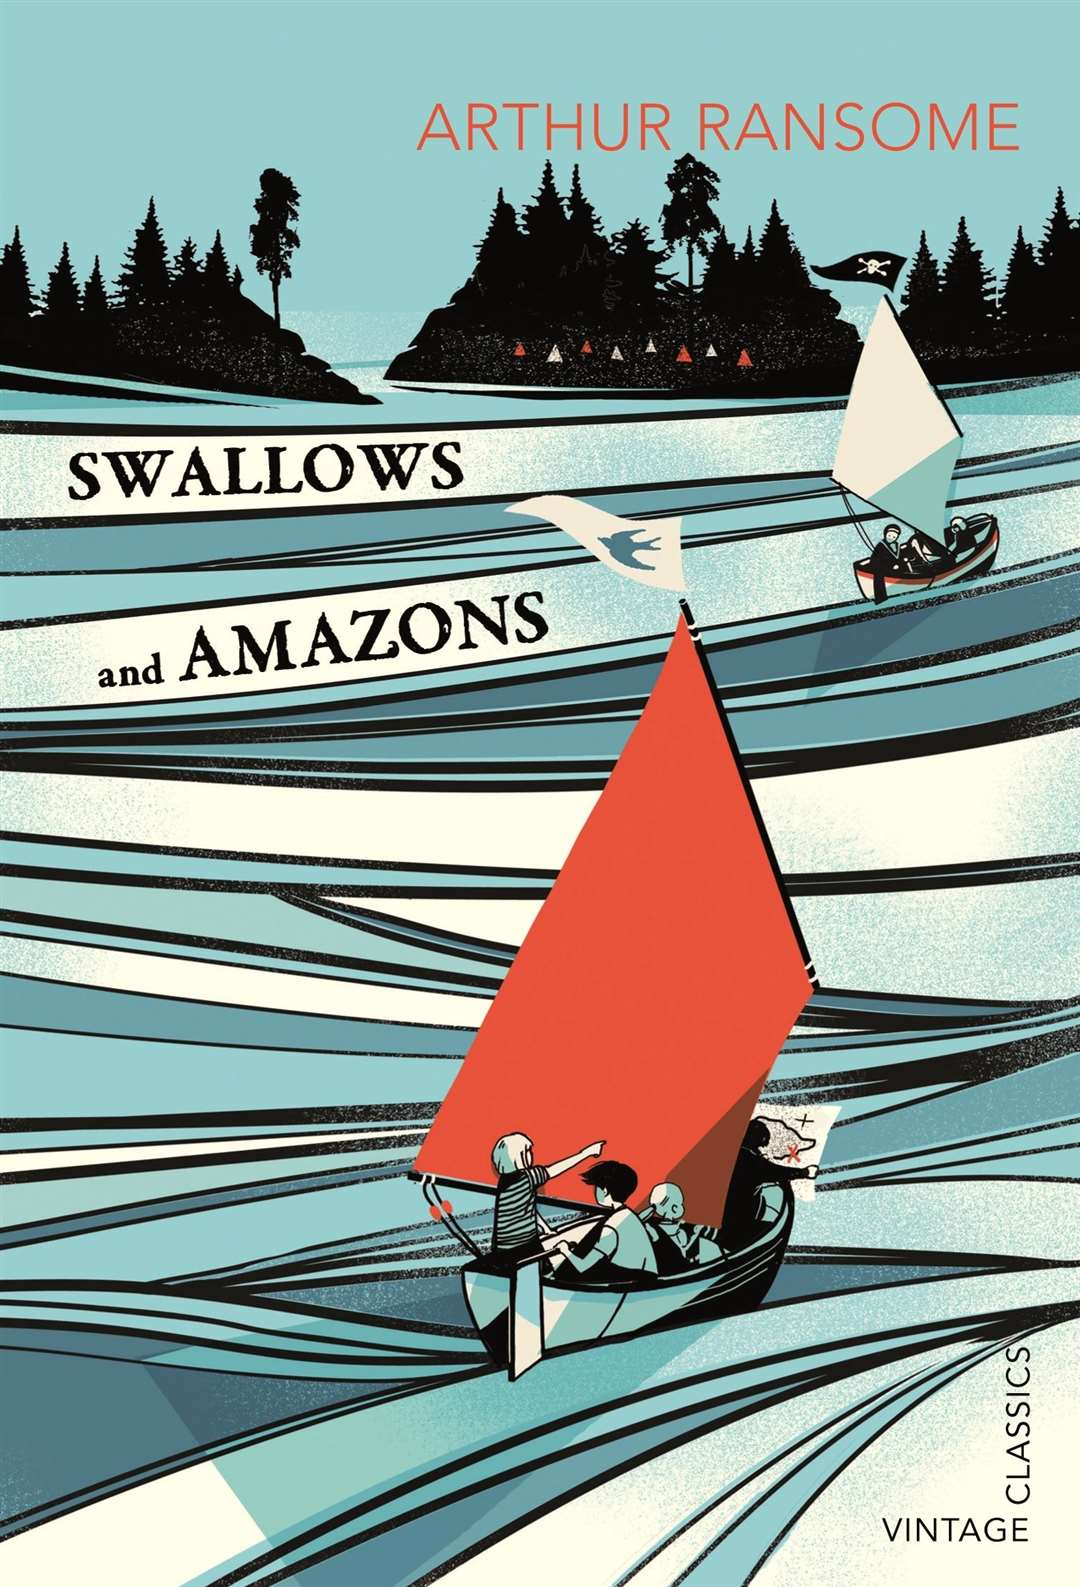 Swallows and Amazons by Arthur Ransome (39035240)